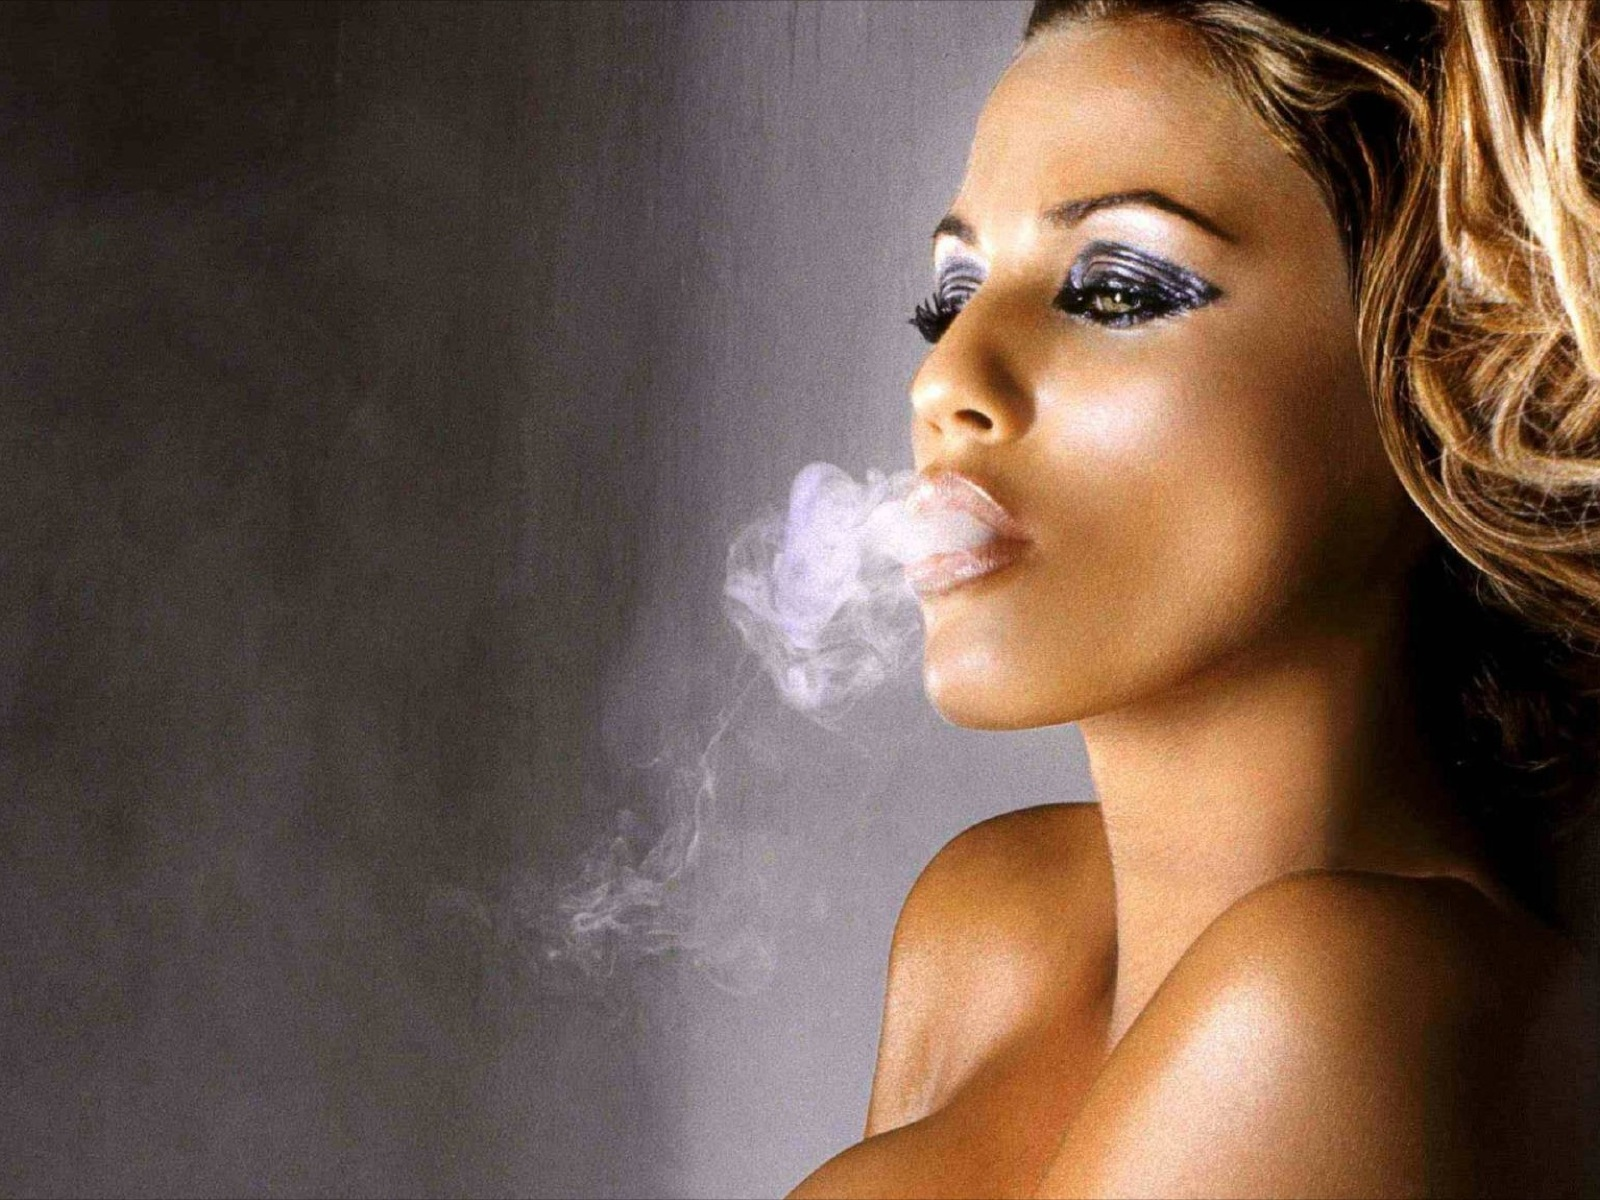 playboy nudes smoking cigarettes